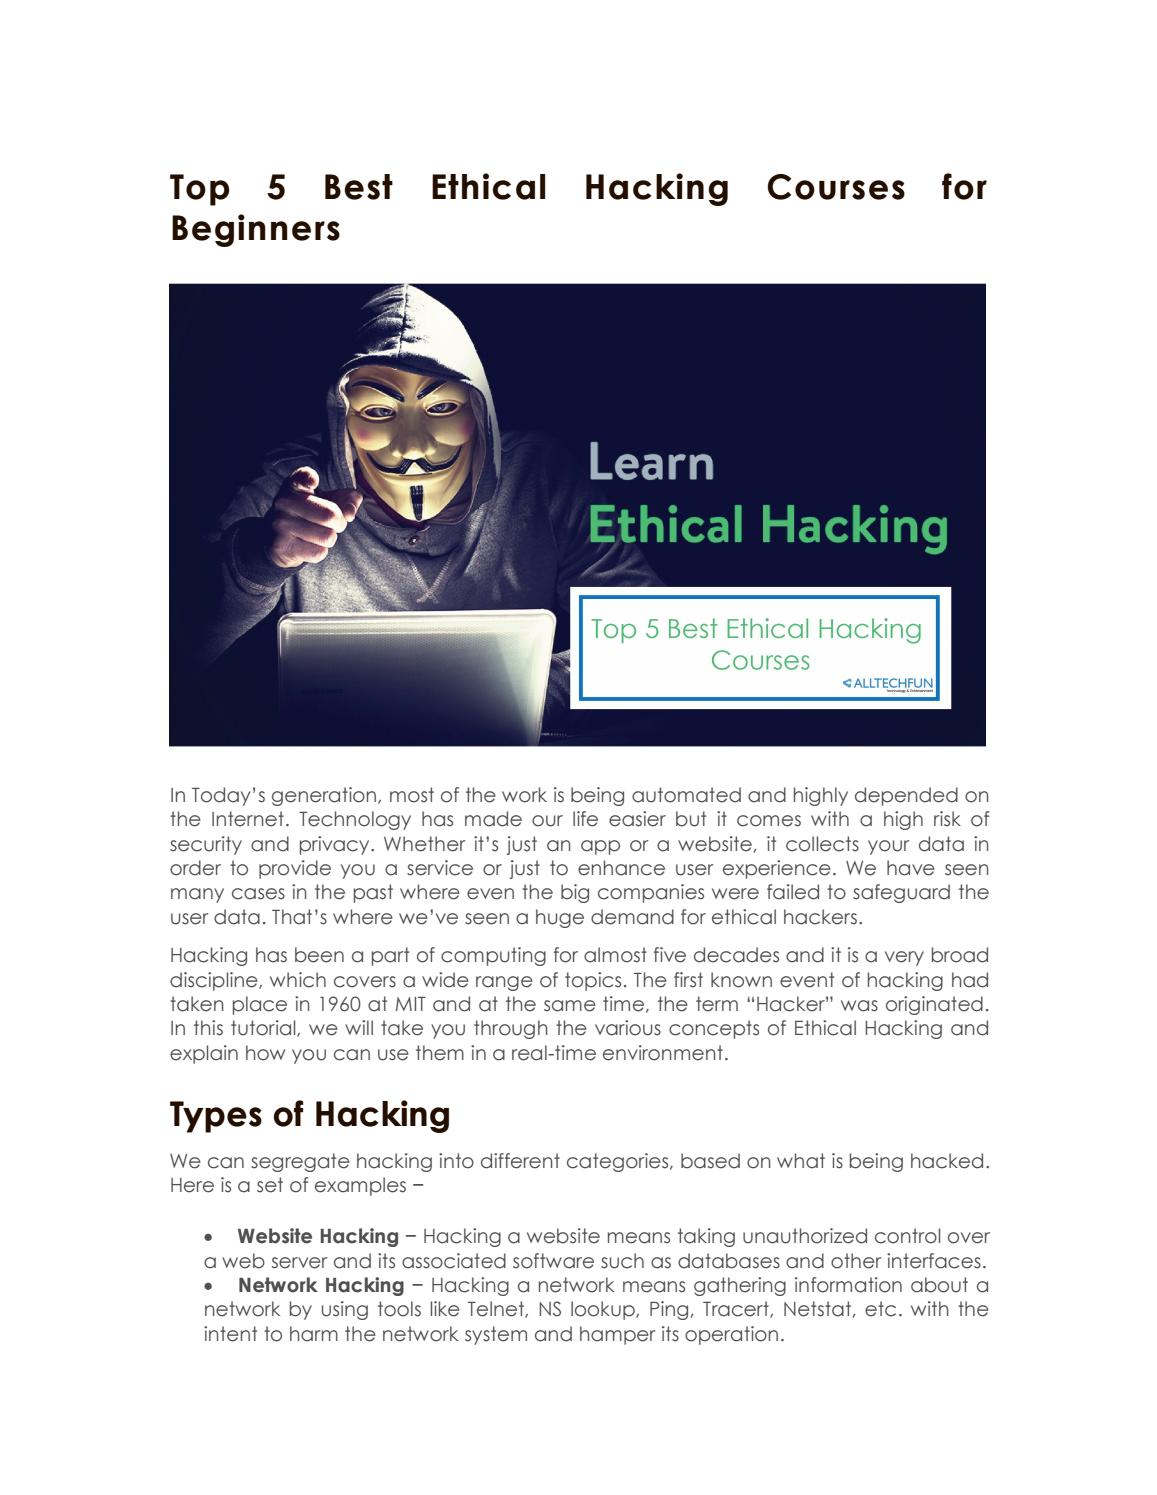 Top 5 best ethical hacking courses for beginners by manjunath8495